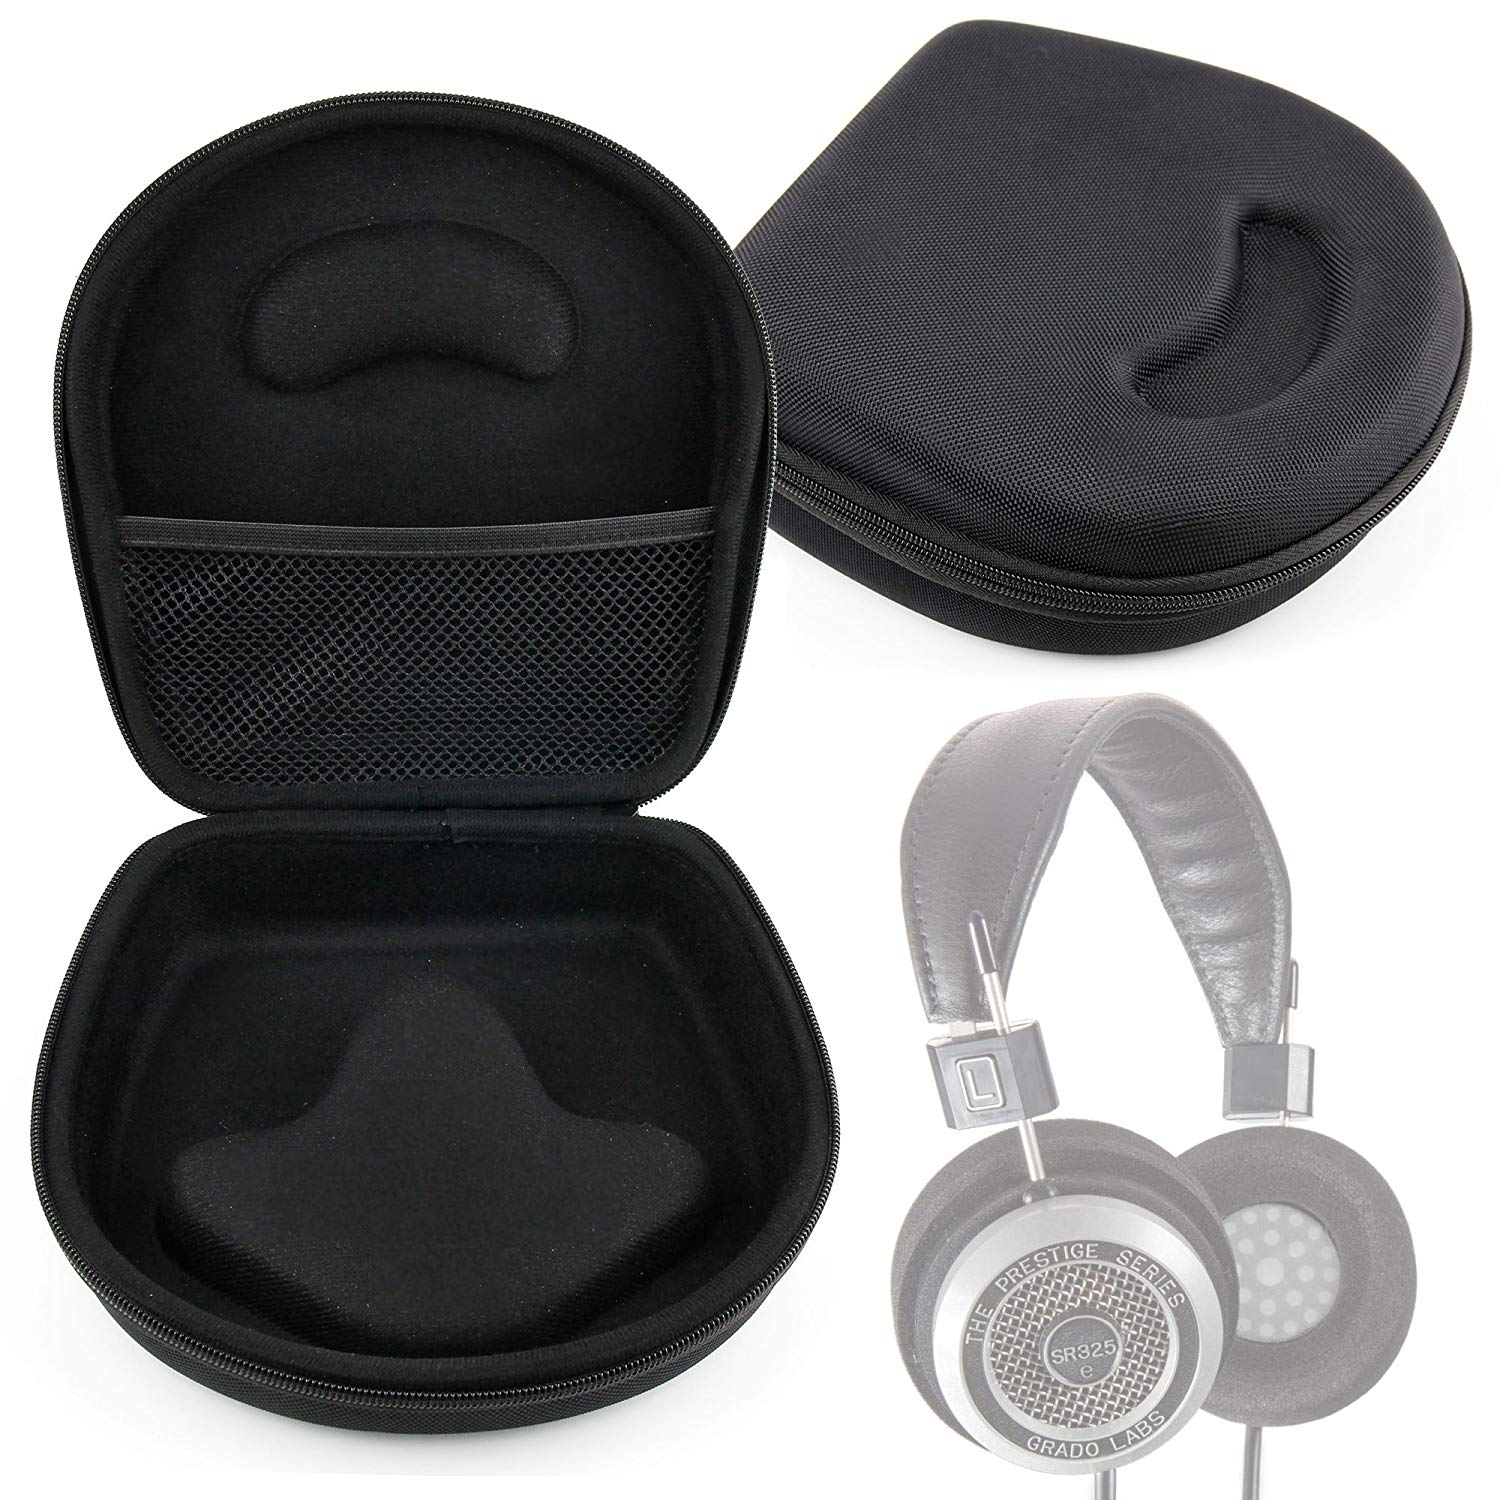 DURAGADGET Hard EVA Storage Case For Headphones/Earbuds, With Compartment (Black) For Grado: SR325is, SR225i, SR125i, SR80i, SR60i, PS1000, PS500, RS1i, RS2i, GS1000i